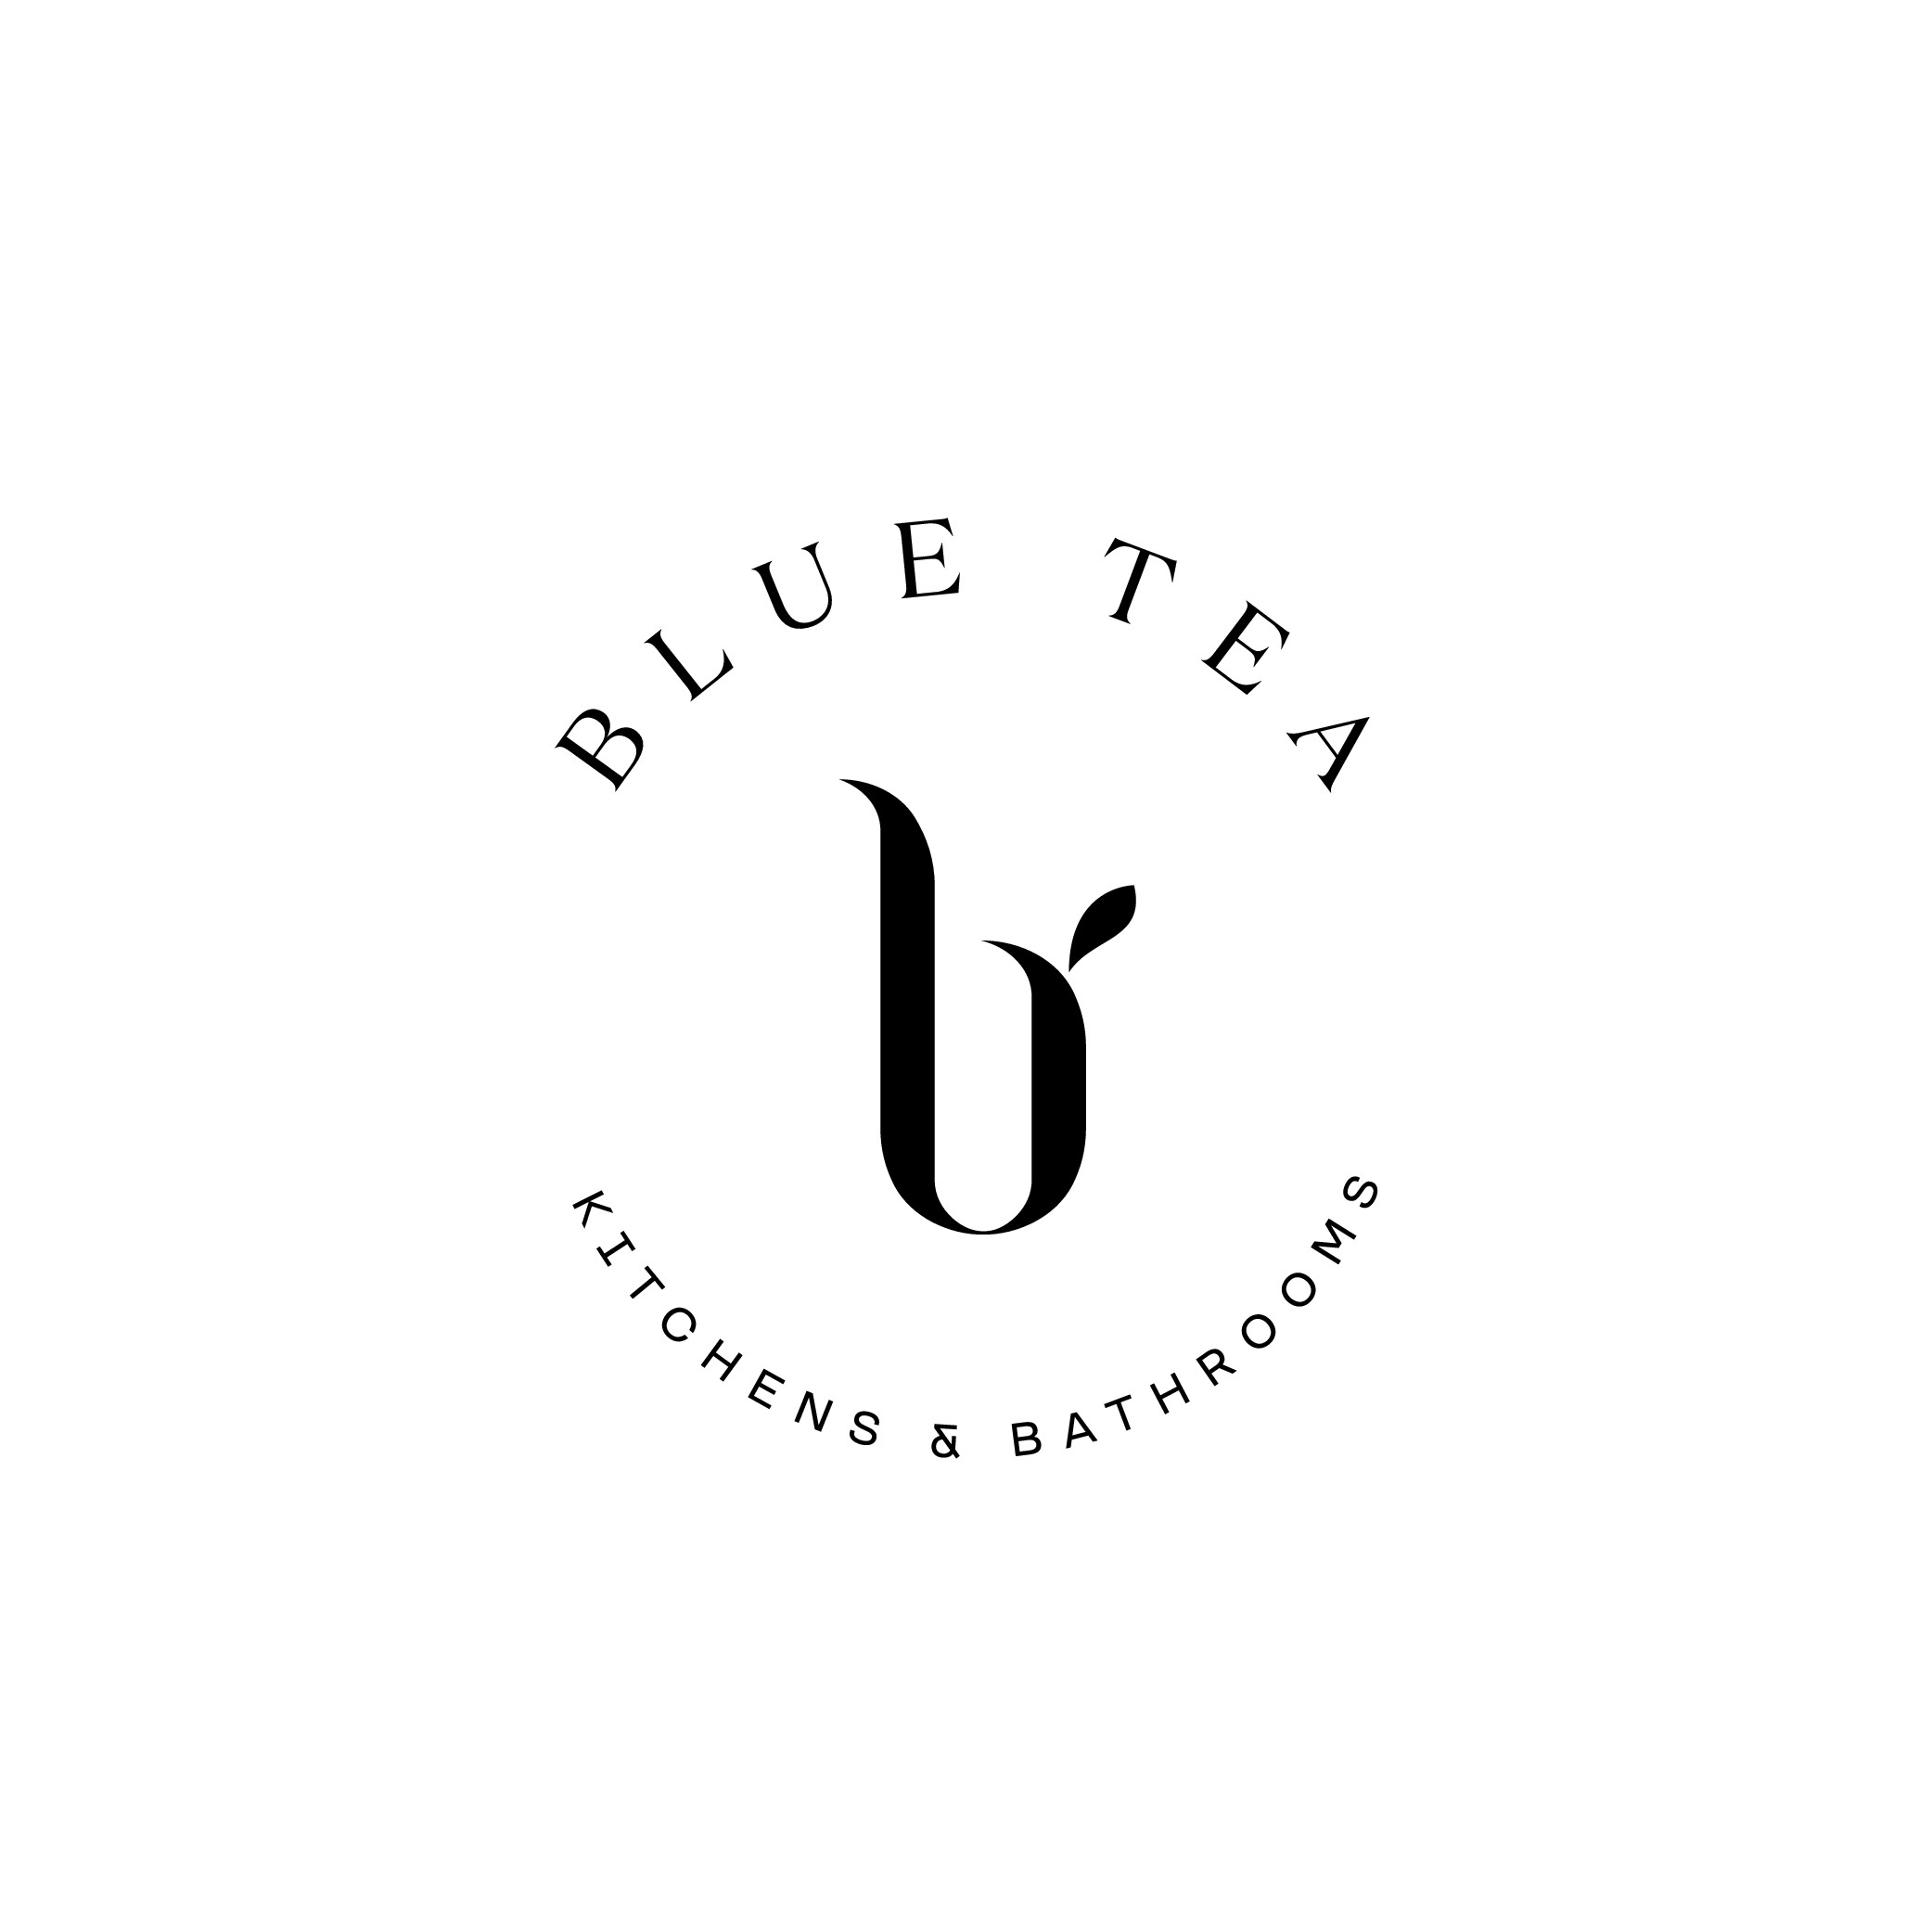 Relaunching Sydney's favourite kitchen company and need a stunning new logo!